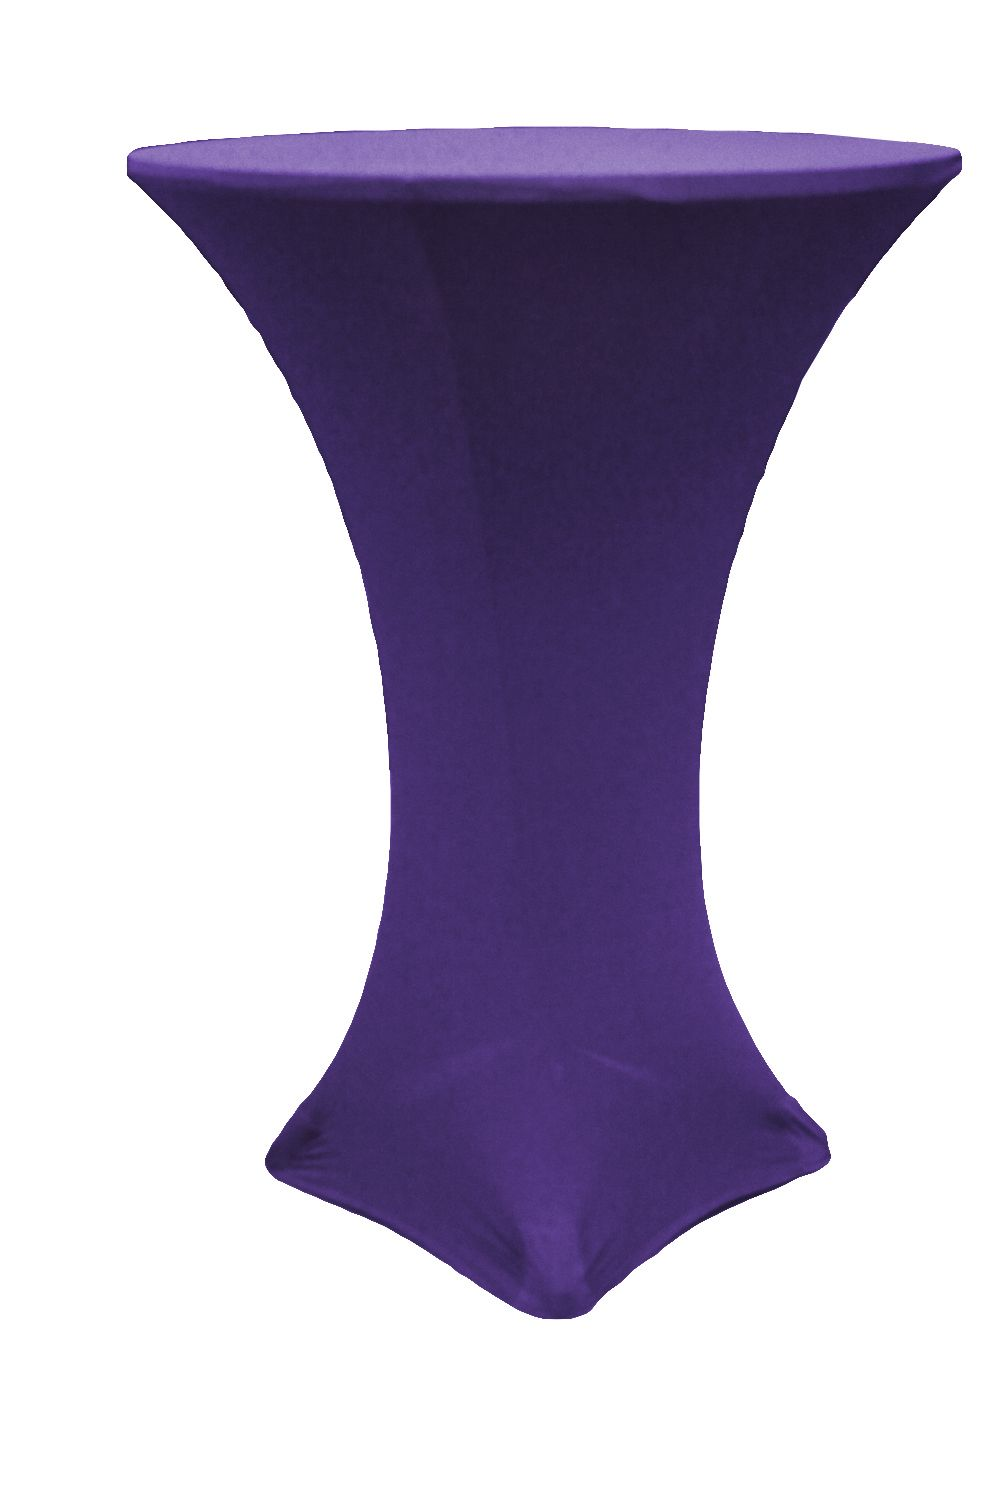 Spandex Cocktail Table Cover 30 Quot Round Purple In 2019